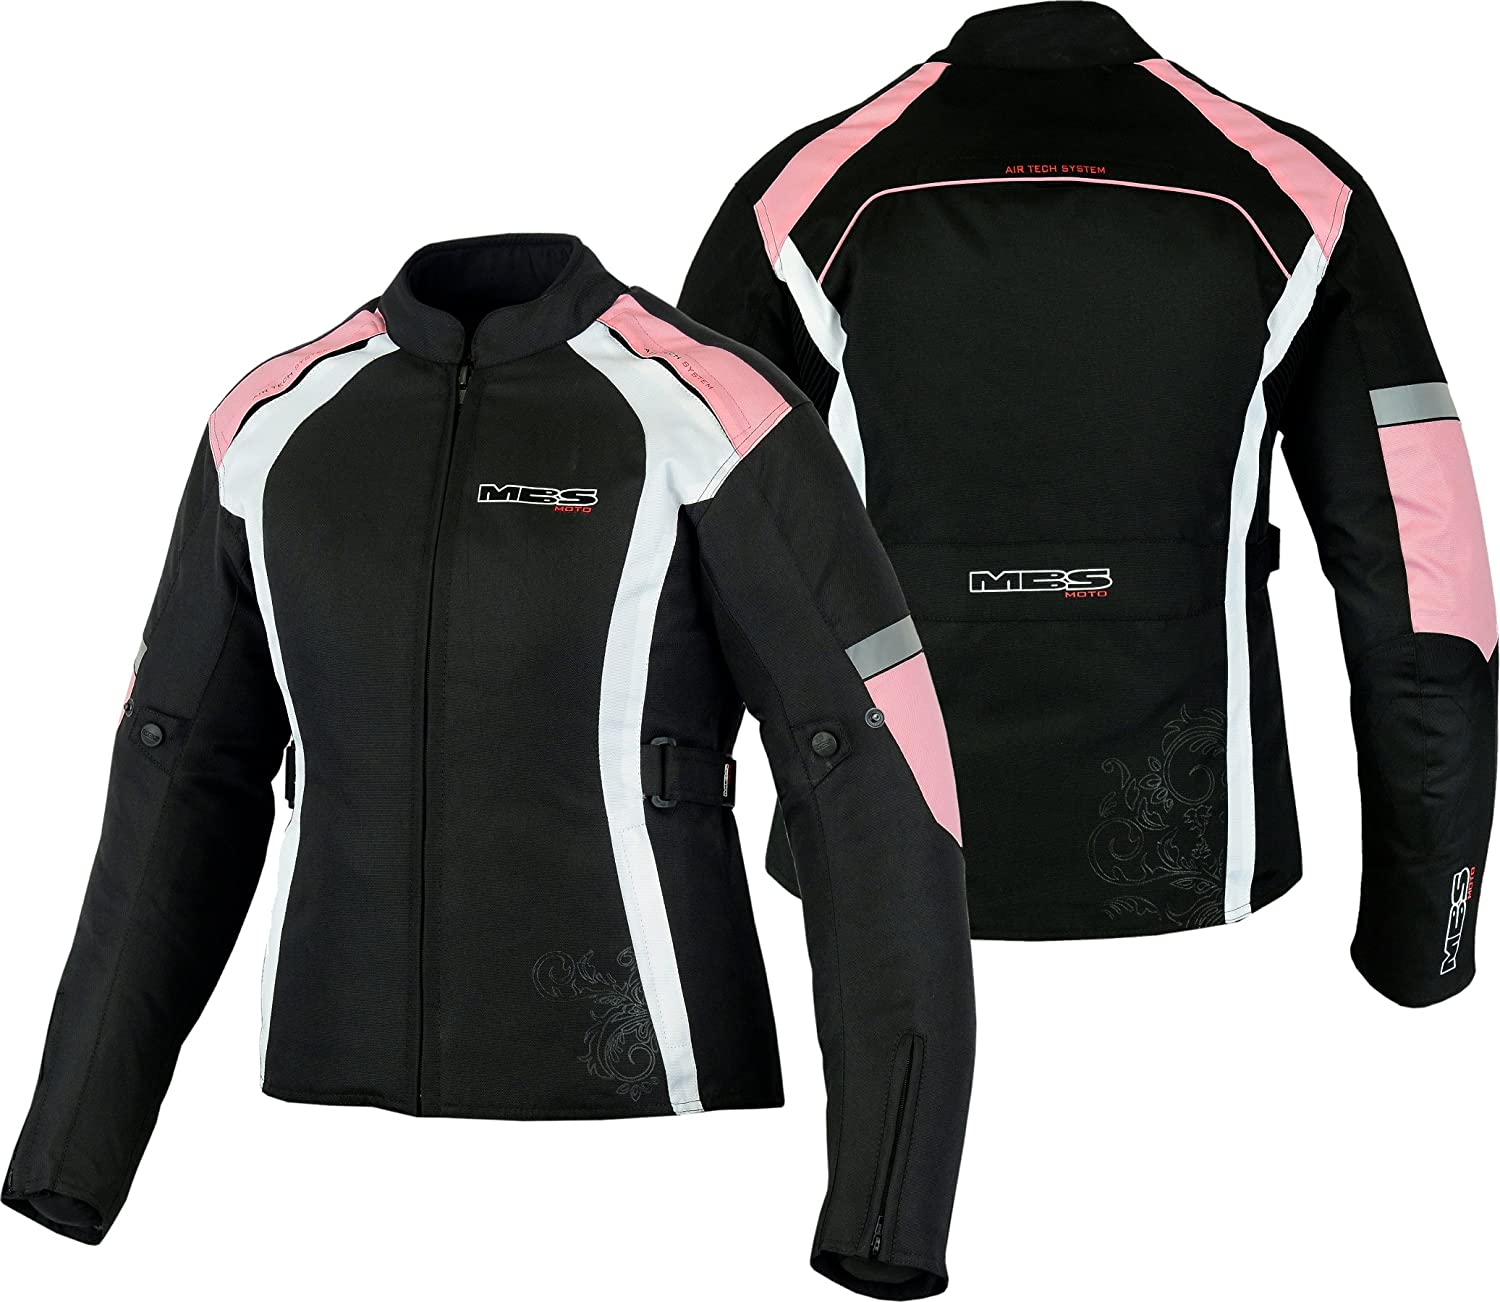 MBSmoto LADYS TEXTILE WATERPROOF 600D JACKET Baby Pink Small//10